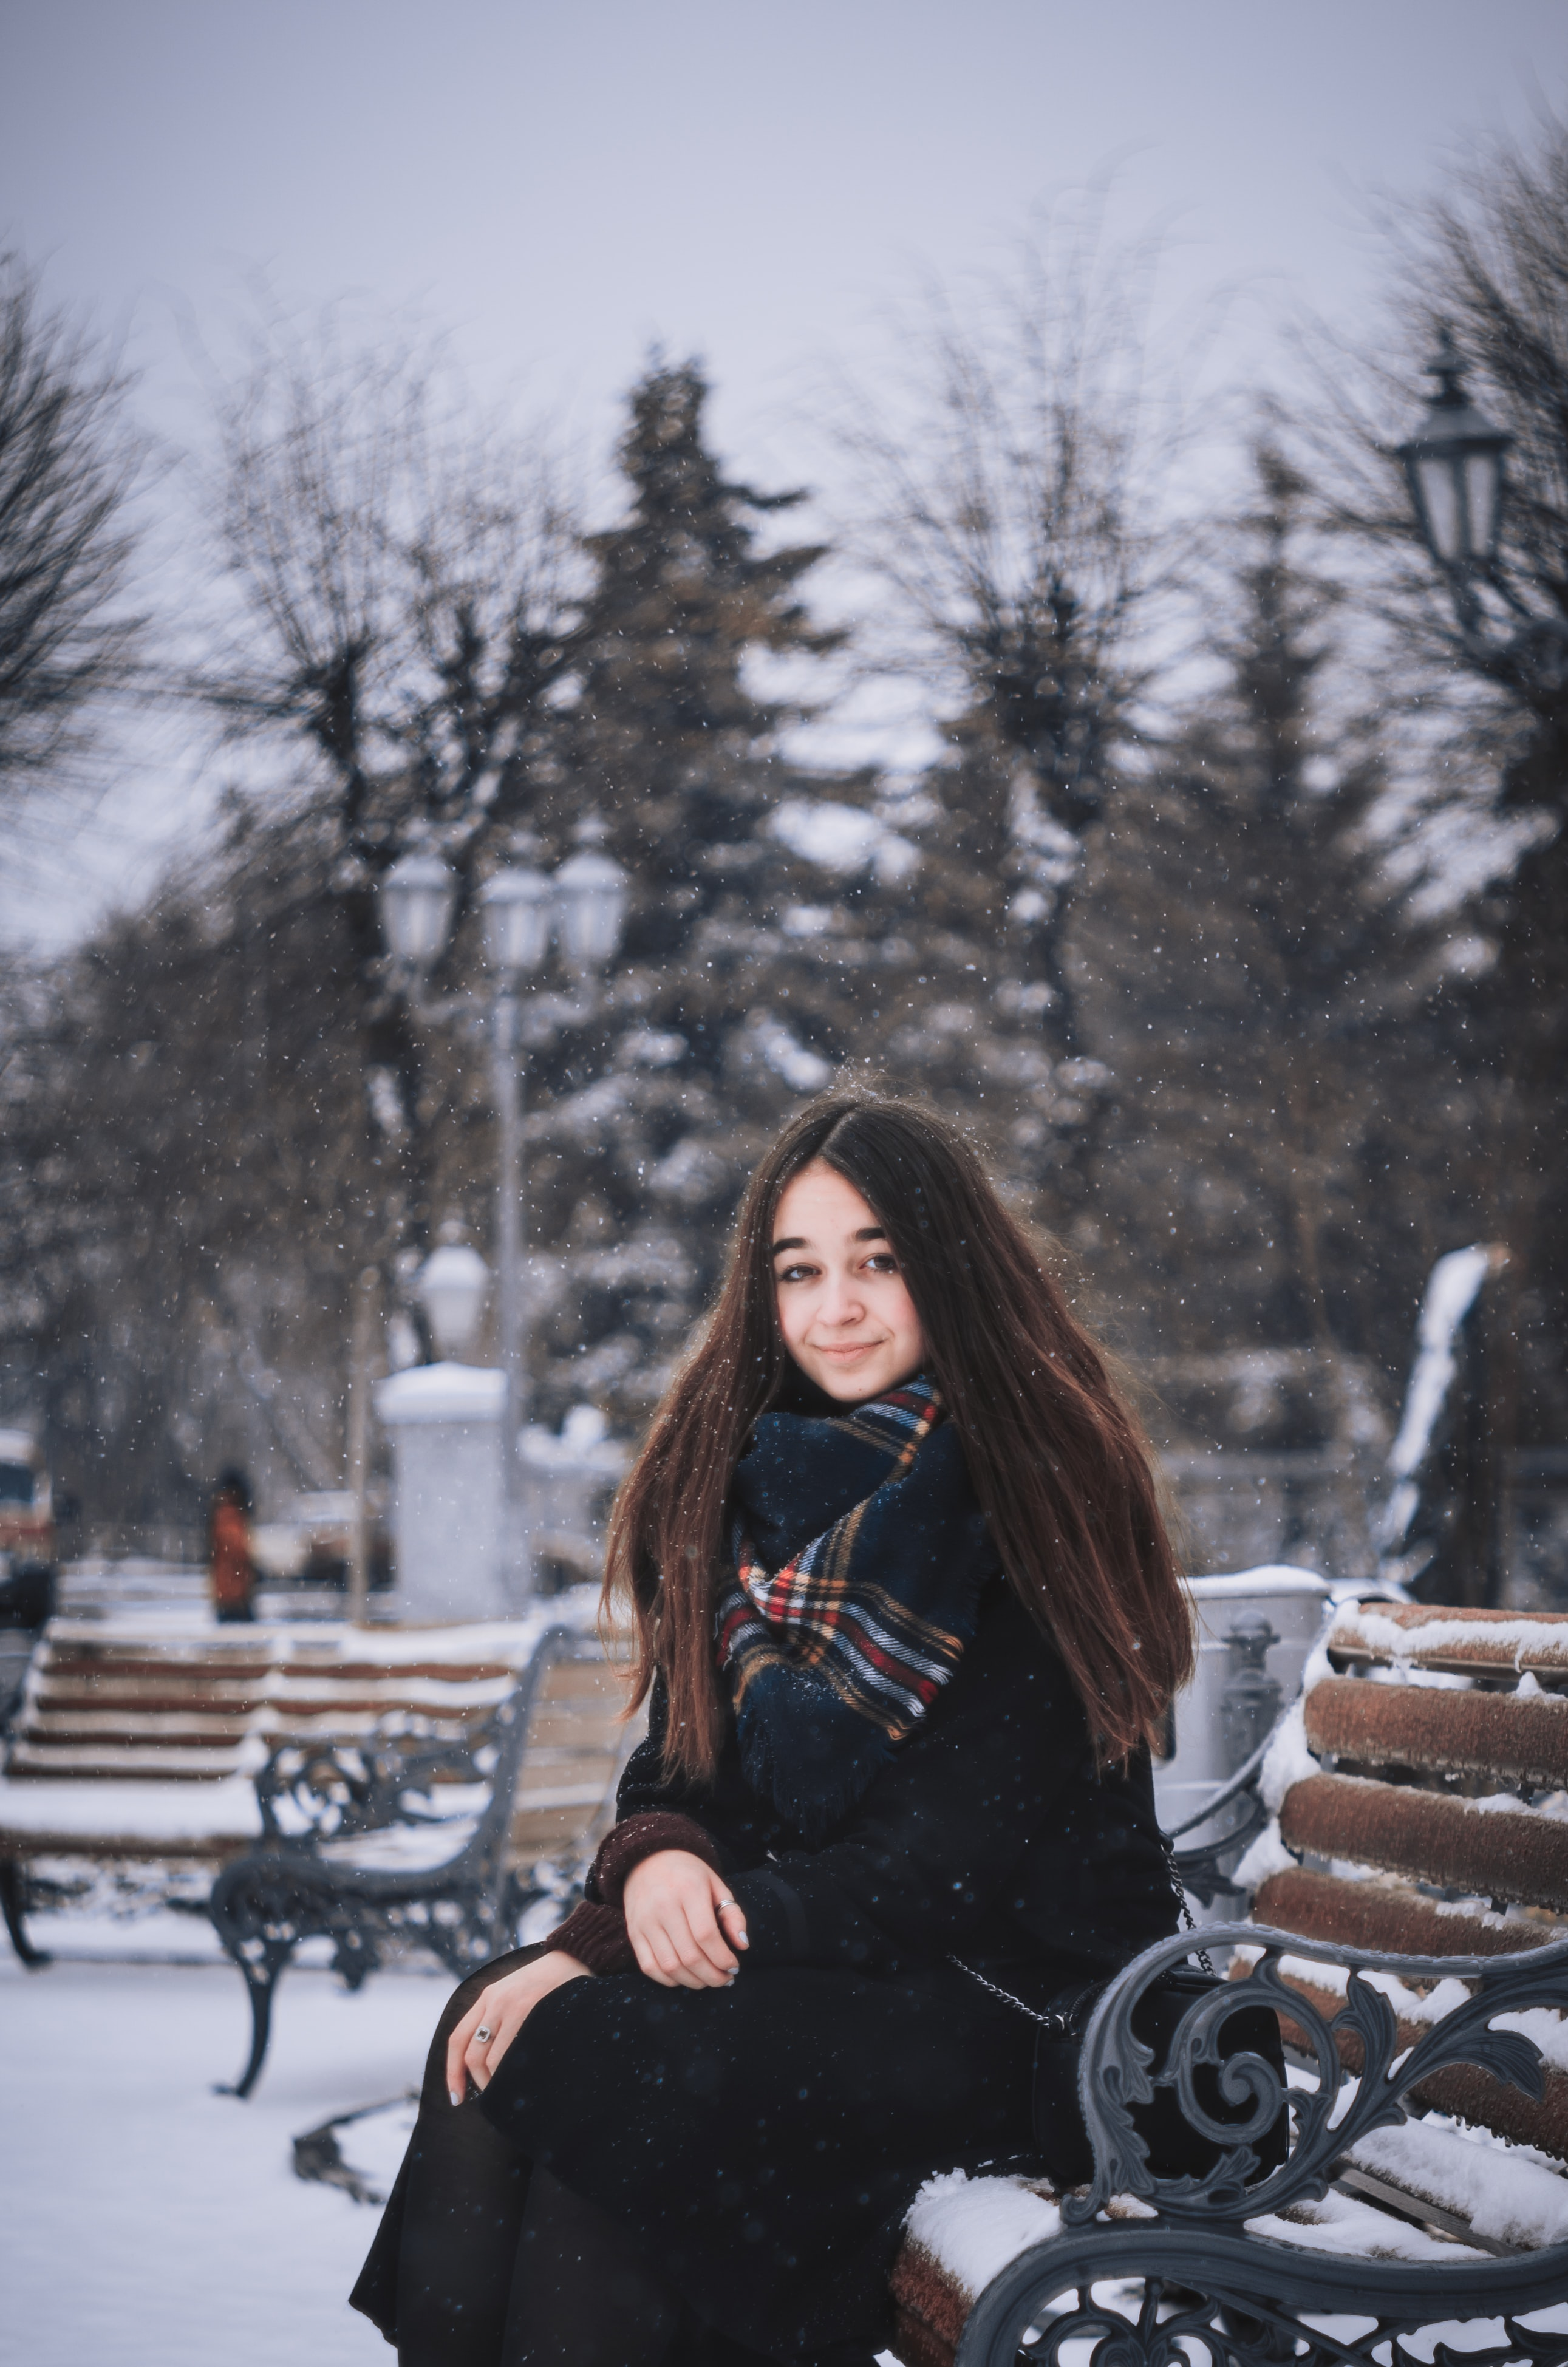 A smiling woman in a scarf sits on a park bench in the snow